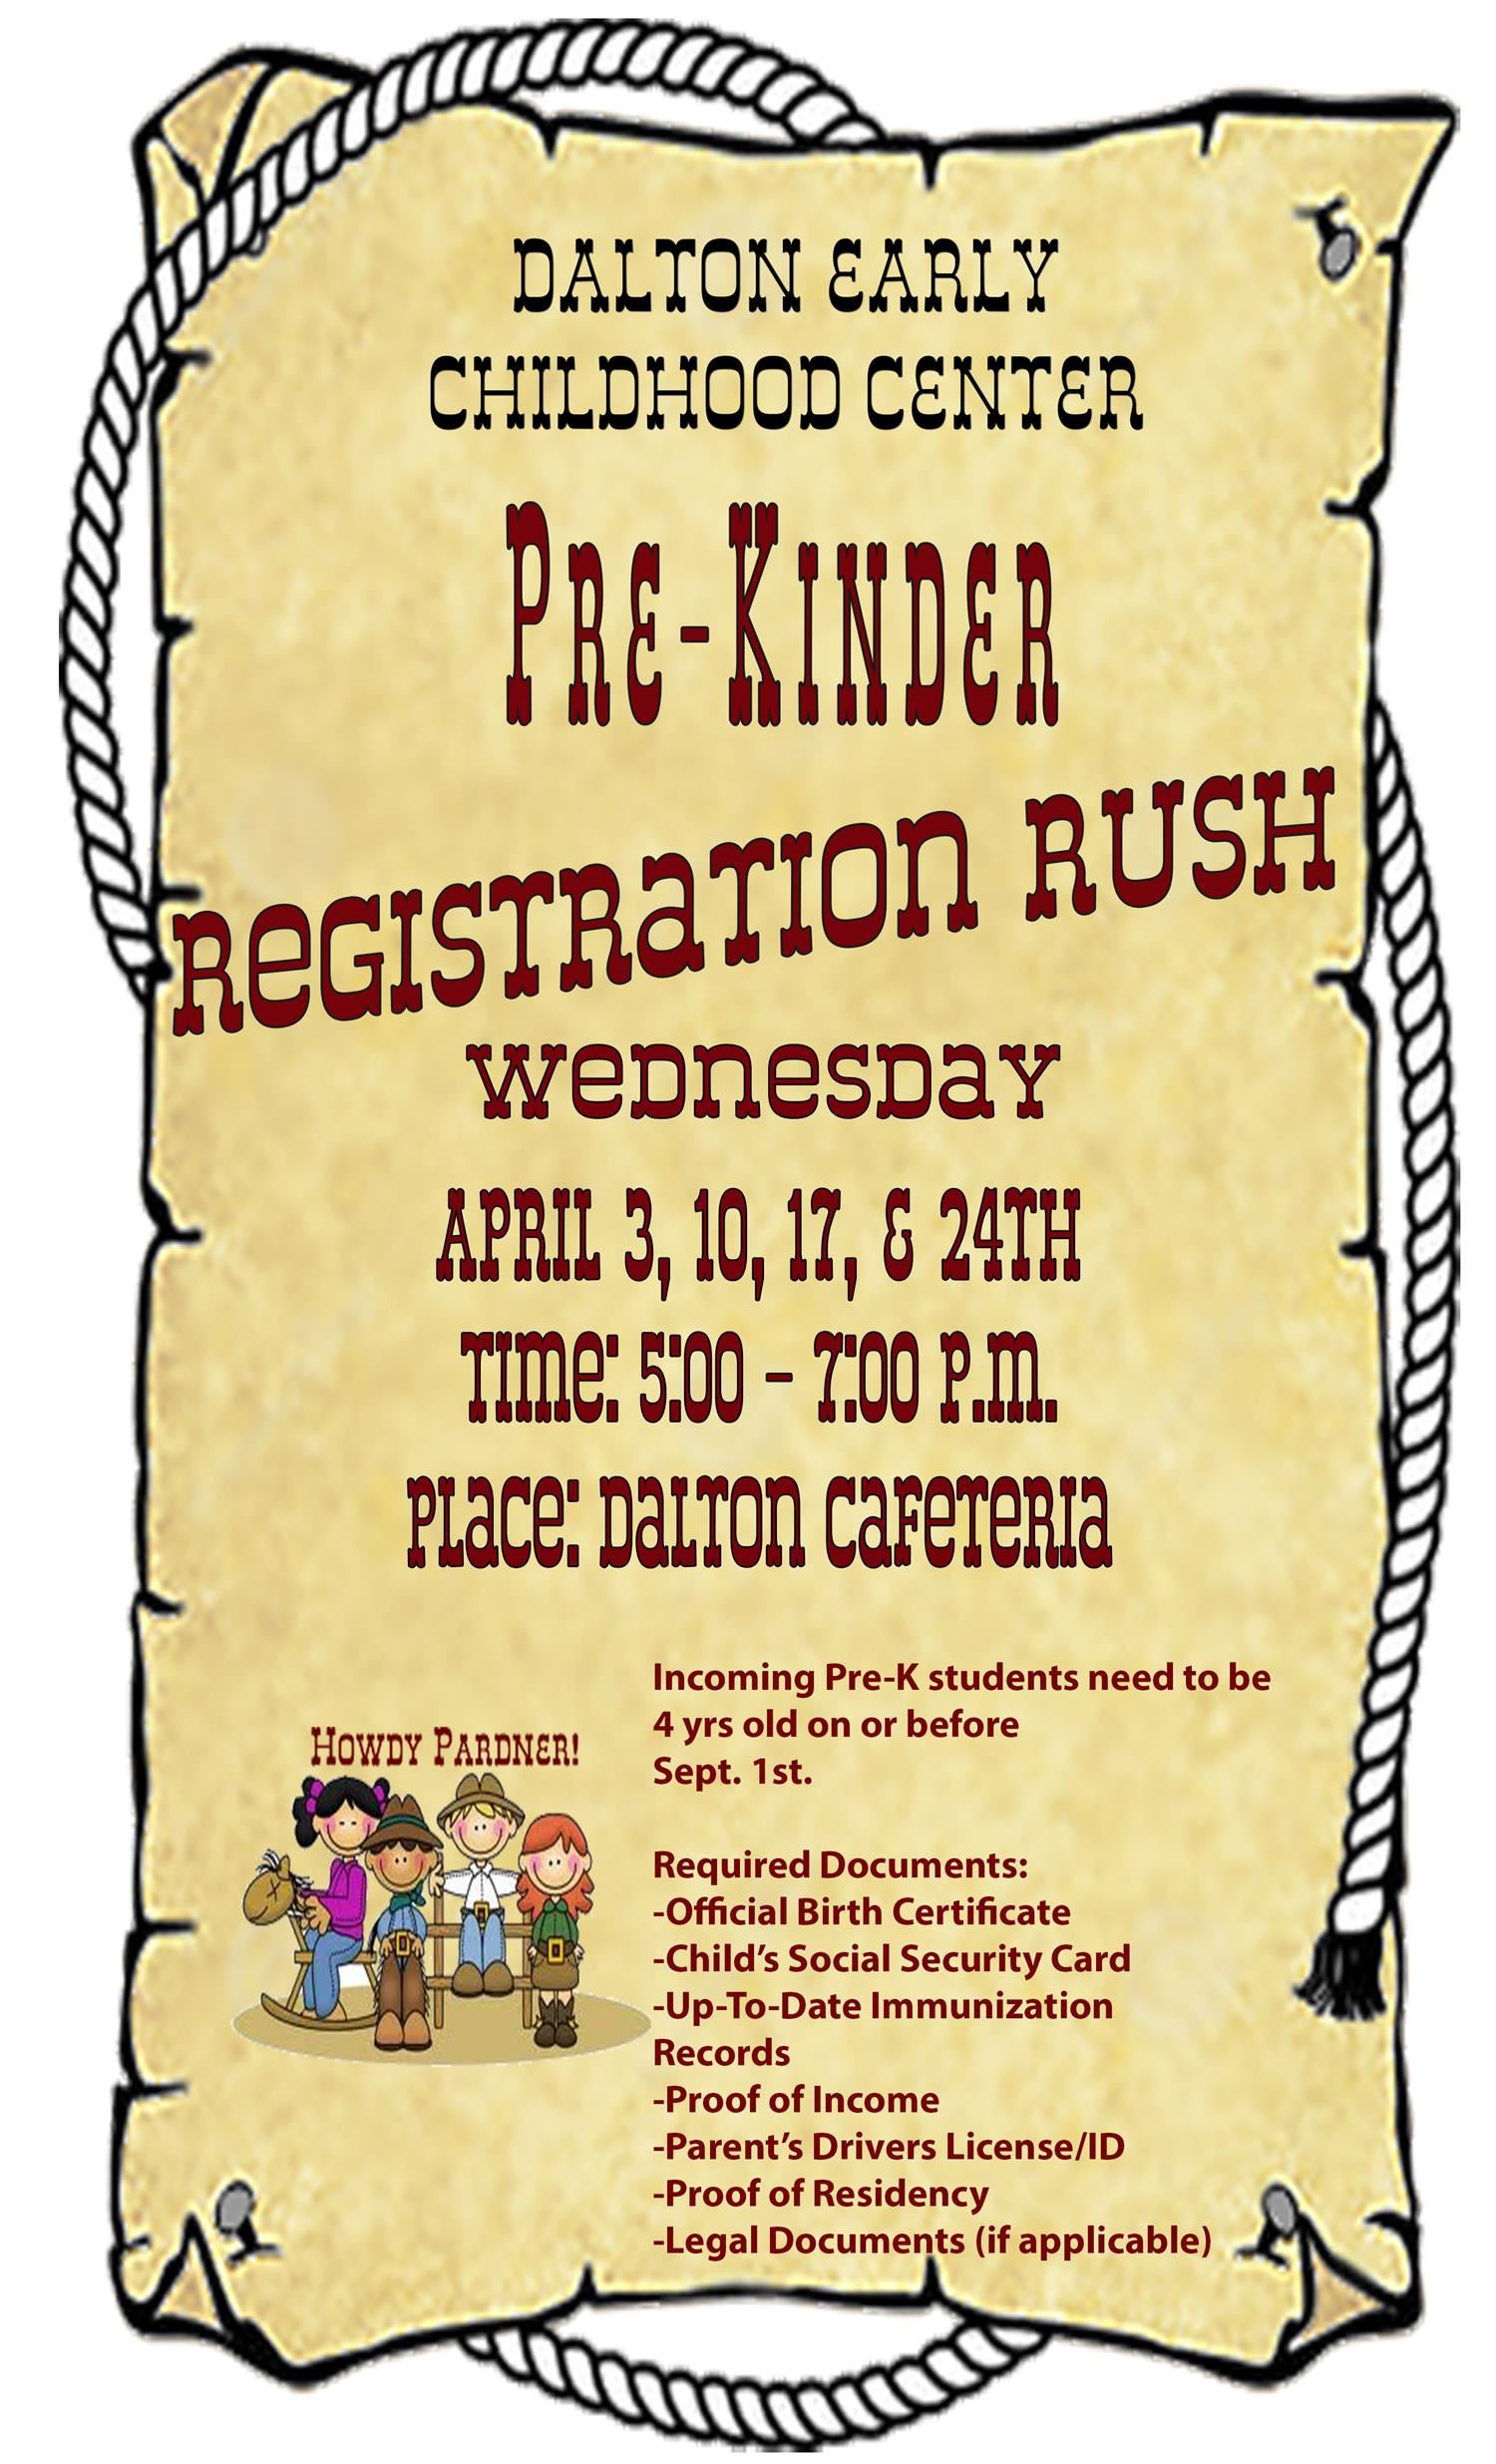 dalton registration rush